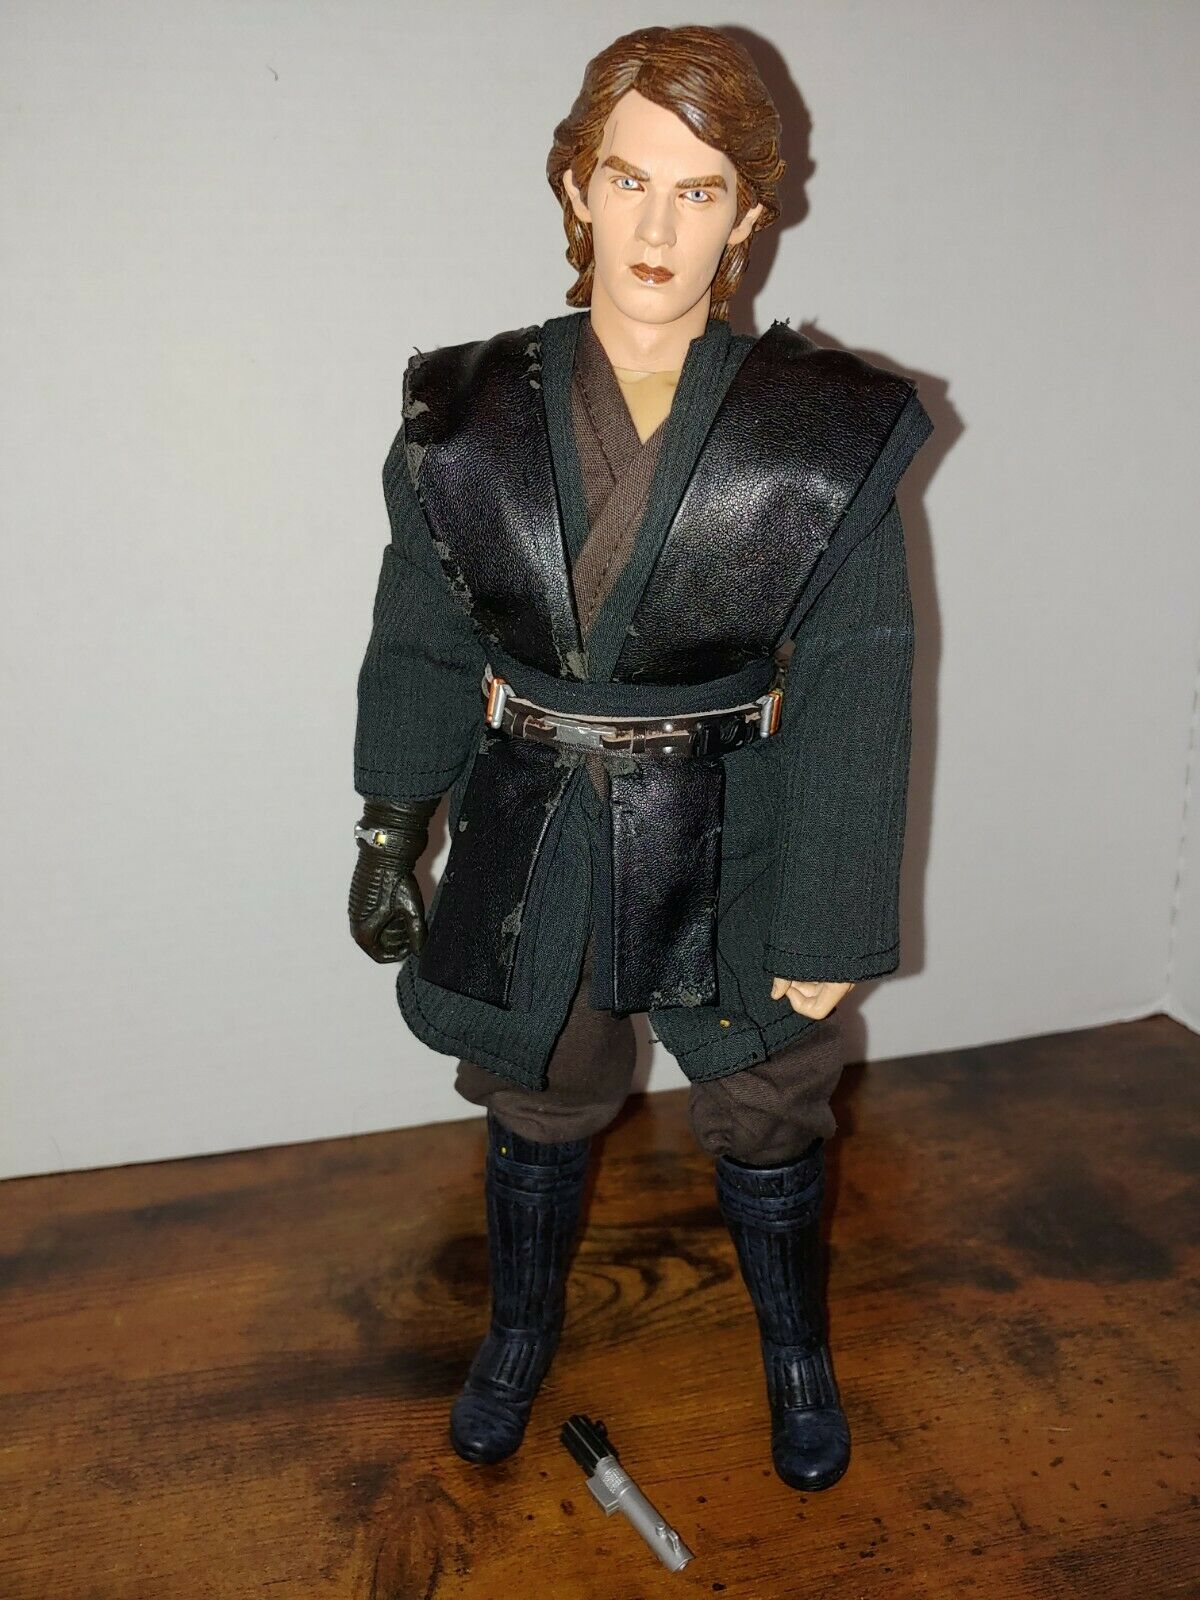 1/6 Sideshow Collectibles Anakin Skywalker incomplete on eBay thumbnail